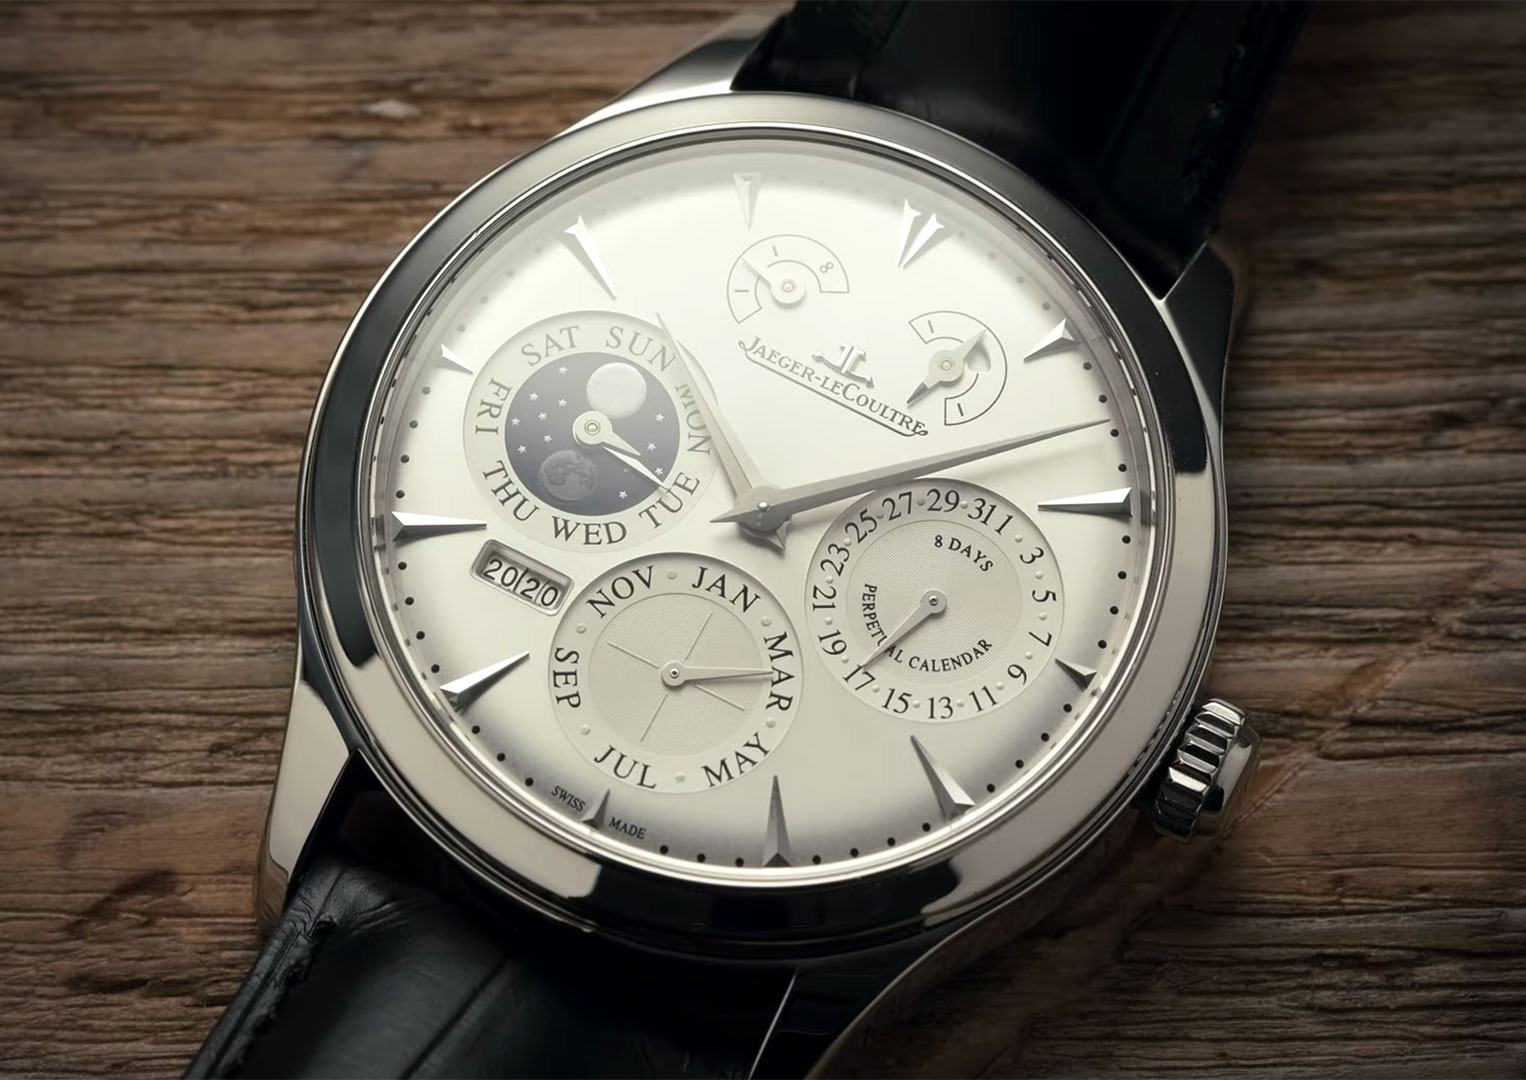 LeCoultre, as the company was originally known, changed its name to Jaeger-LeCoultre in 1937 after a merger with watchmaker Edmond Jaeger